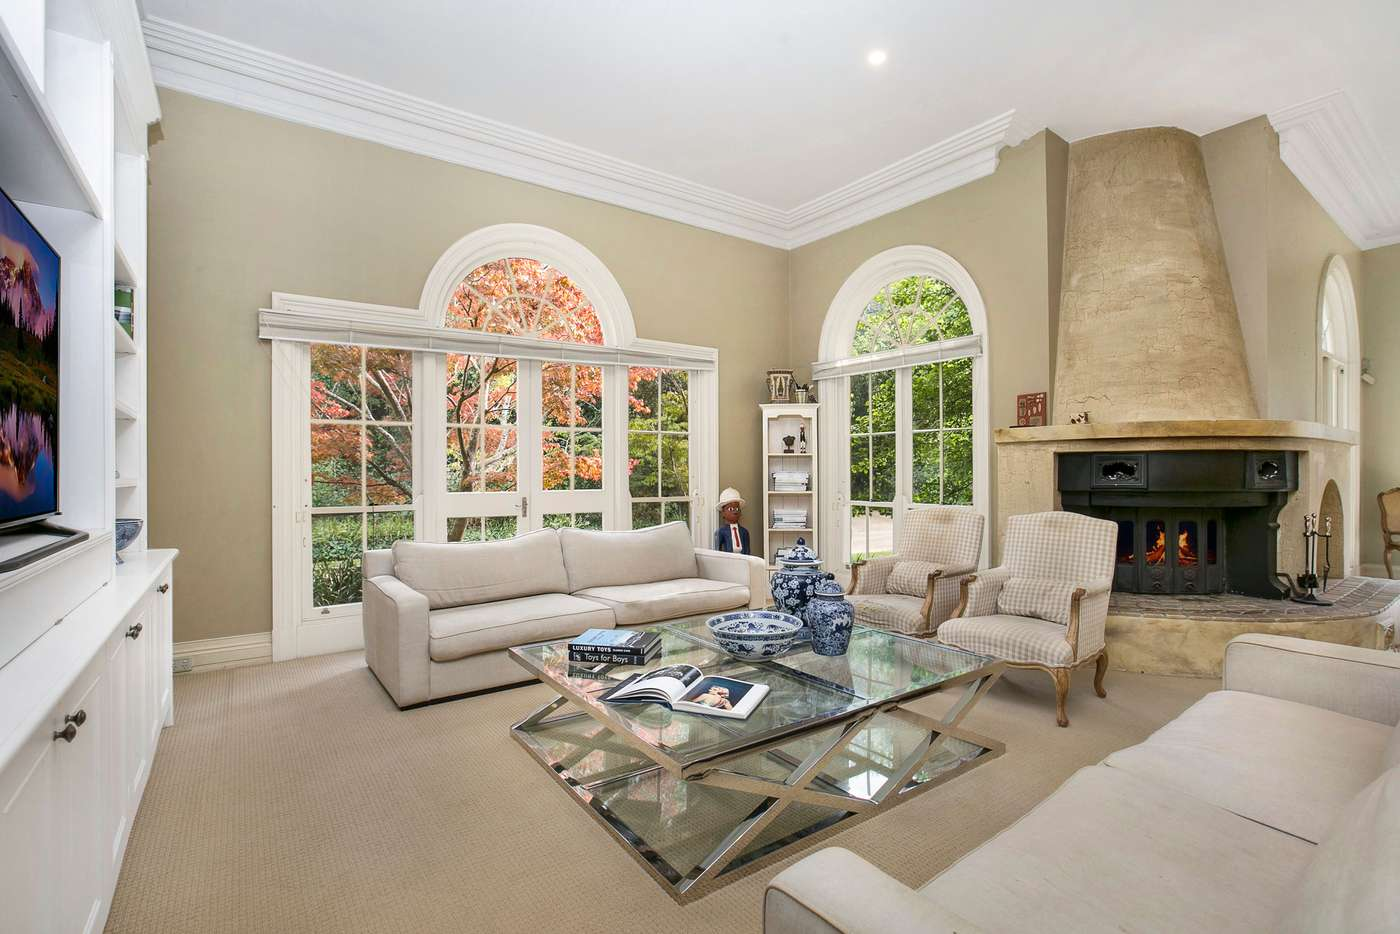 Seventh view of Homely house listing, 3-5 Patchway Place, Burradoo NSW 2576